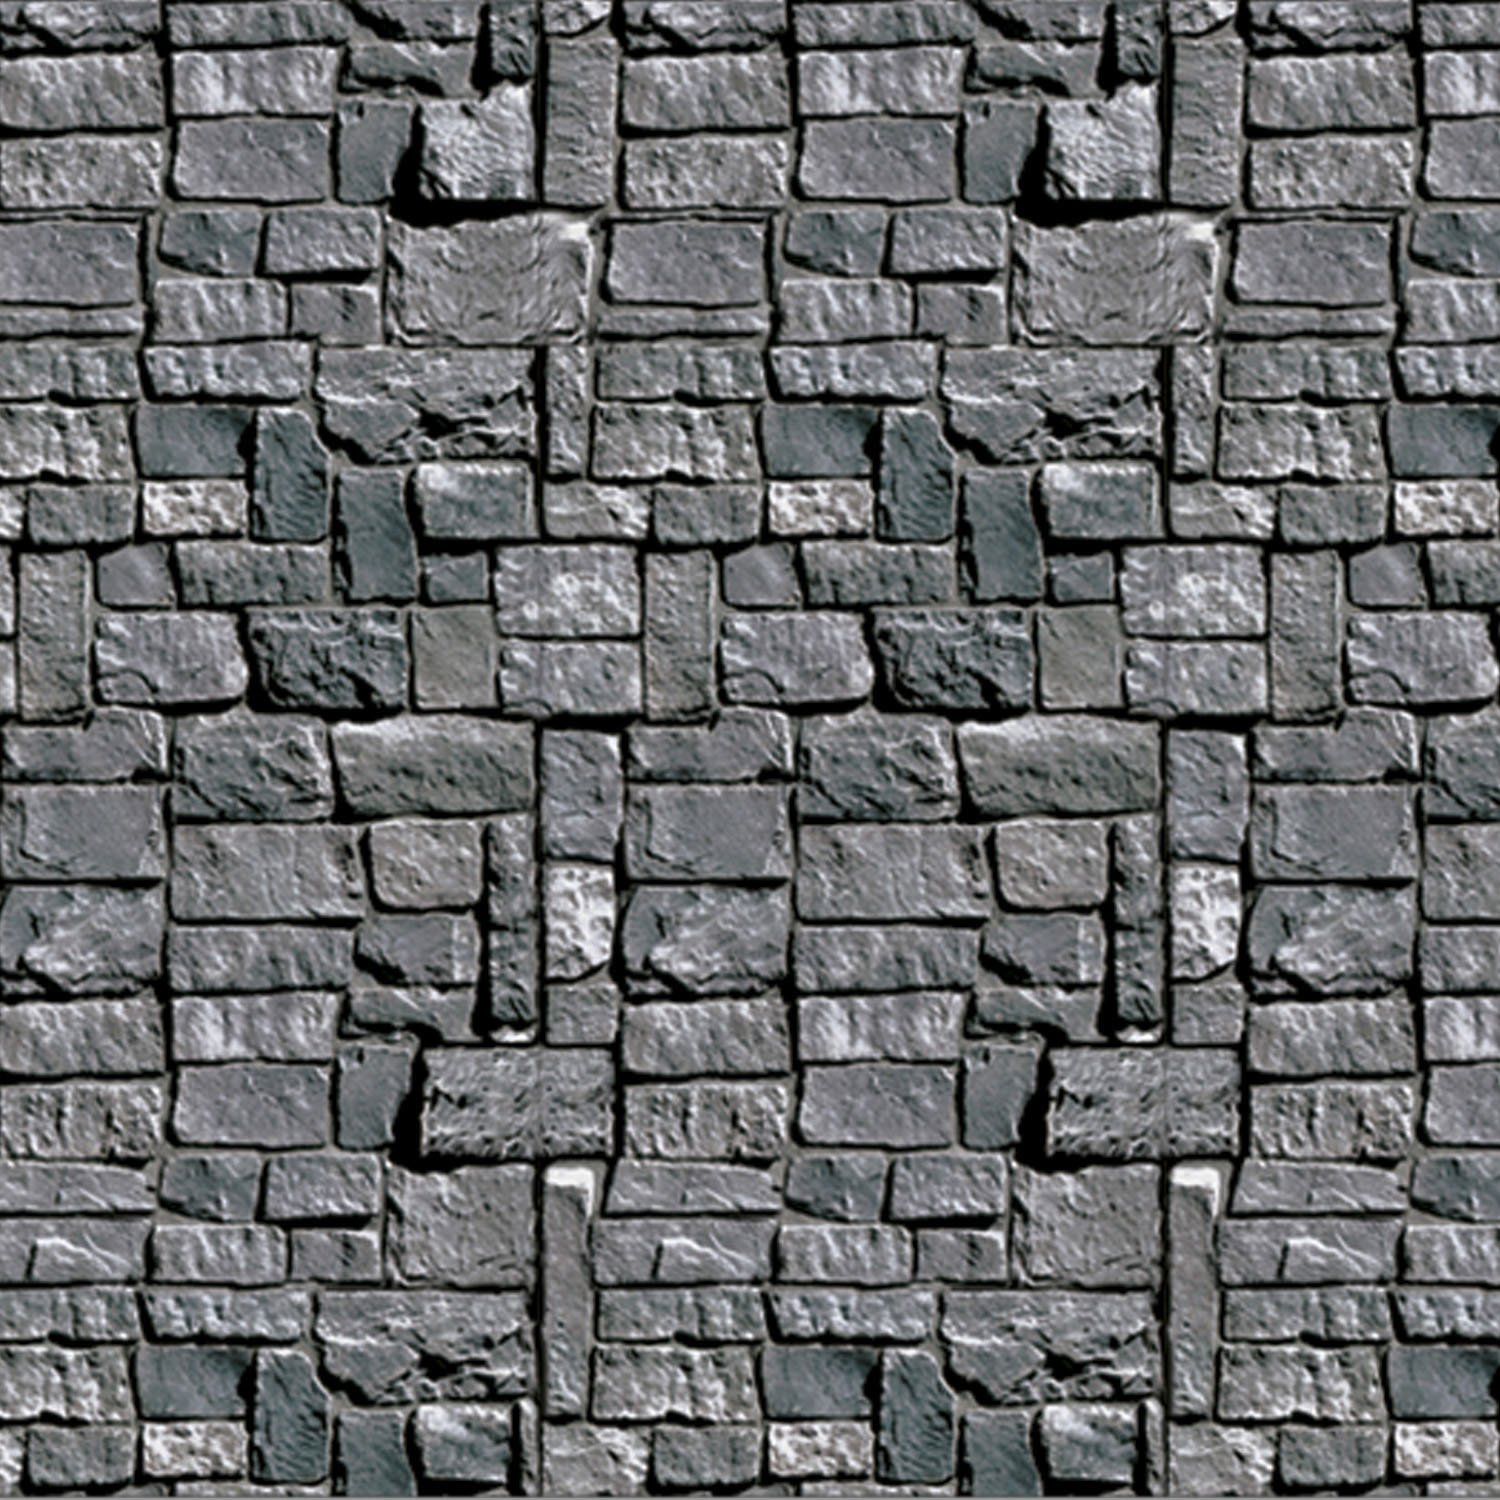 Sandstone wall sandstone wall - Amazon Com Stone Wall Backdrop Party Accessory 1 Count 1 Pkg Christmas Decor Kitchen Dining